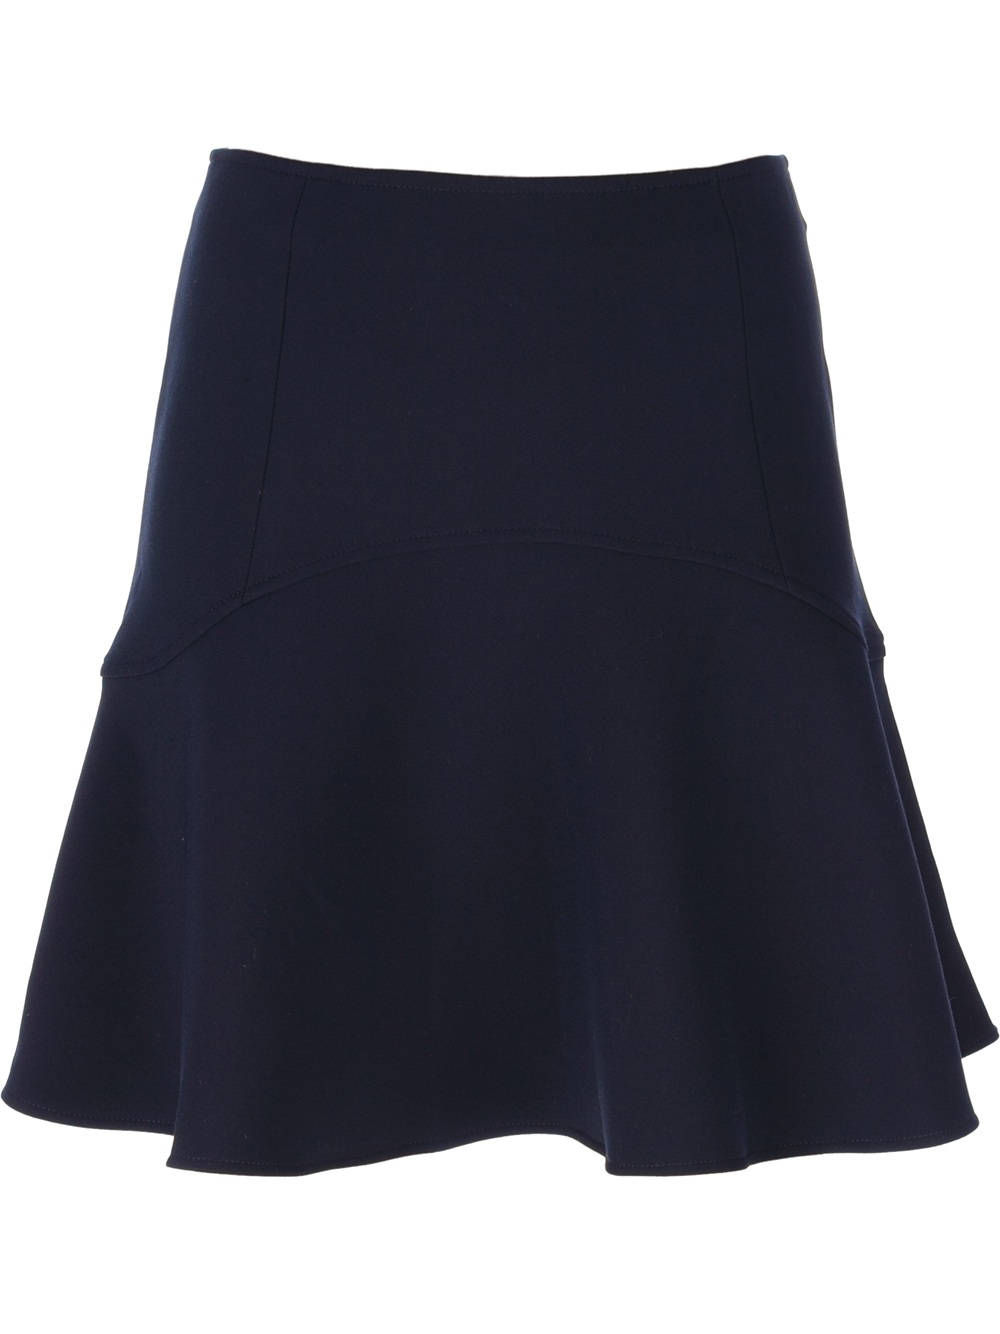 le mont st michel flared high waisted skirt in blue navy